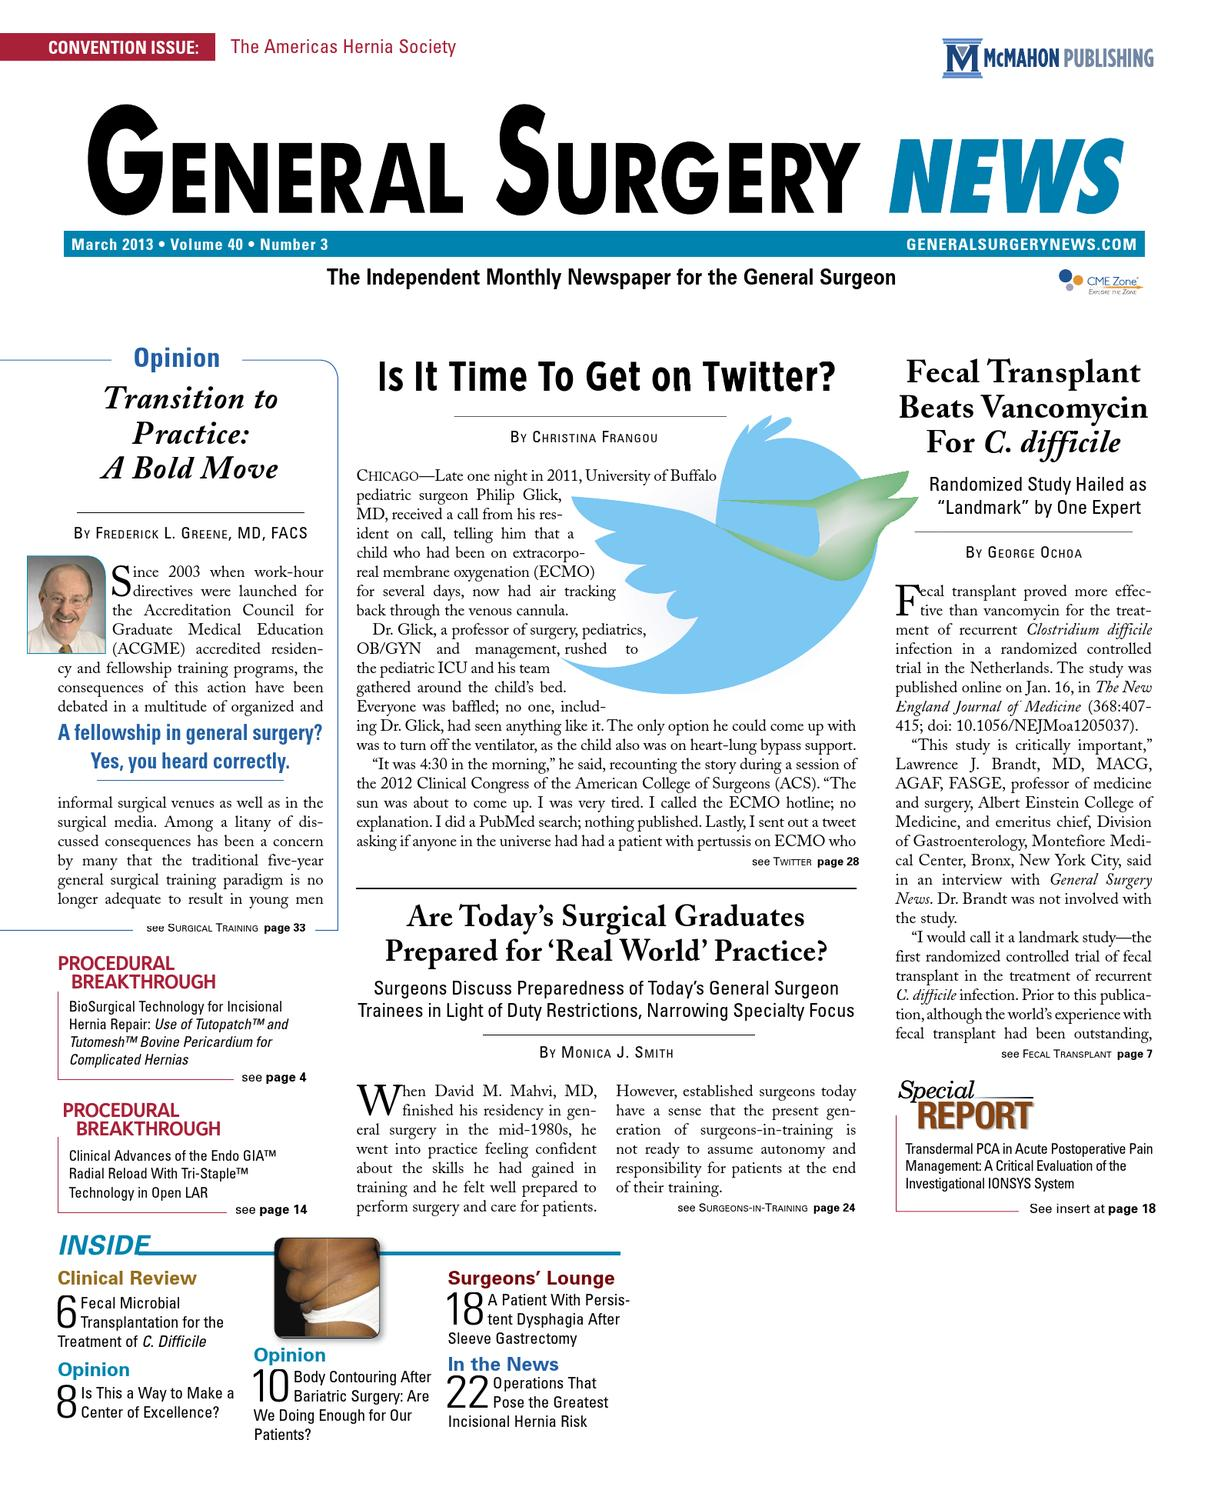 The March 2013 Digital Edition Of General Surgery News By McMahon